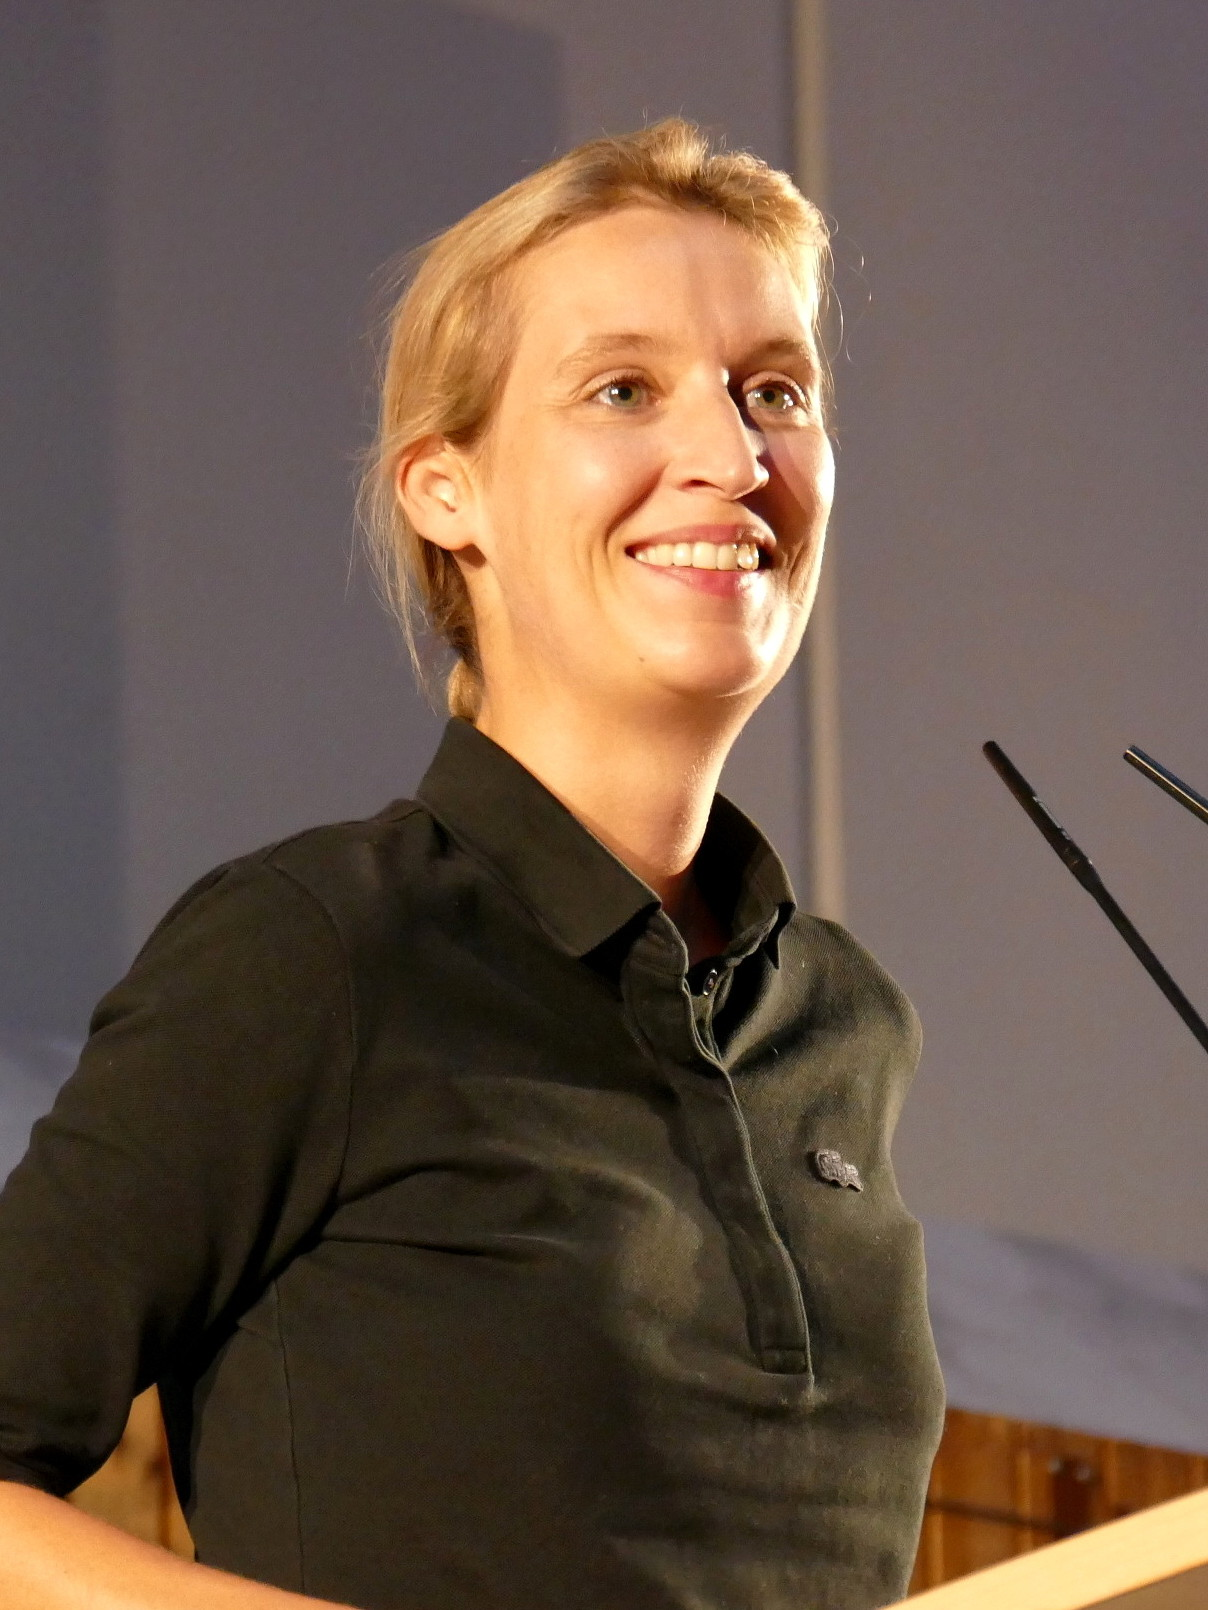 Alice Weidel is the joint leader of Germany's far right AfD party